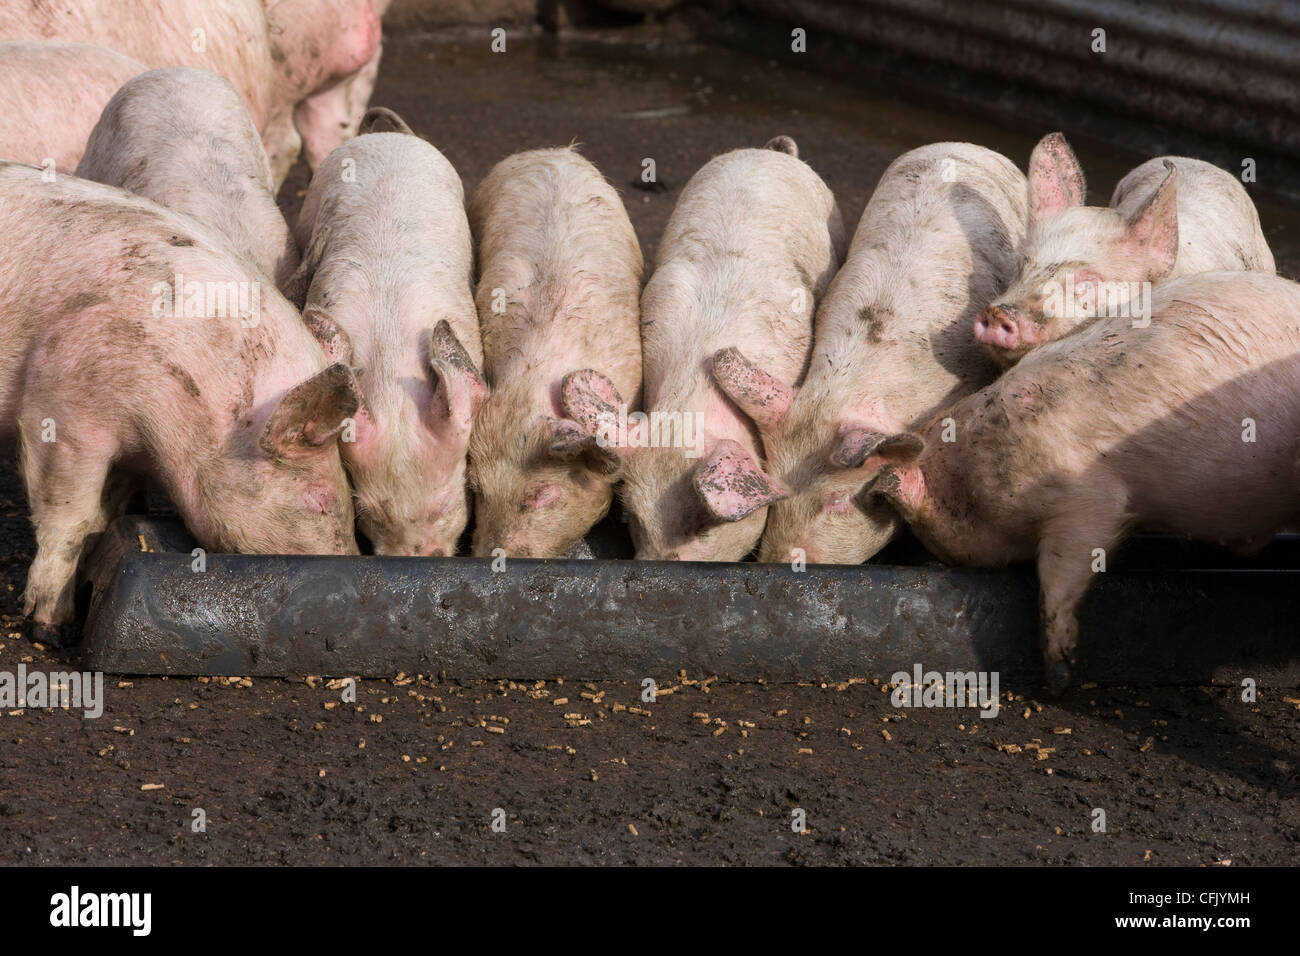 Pigs Eating Trough High Resolution Stock Photography and Images - Alamy